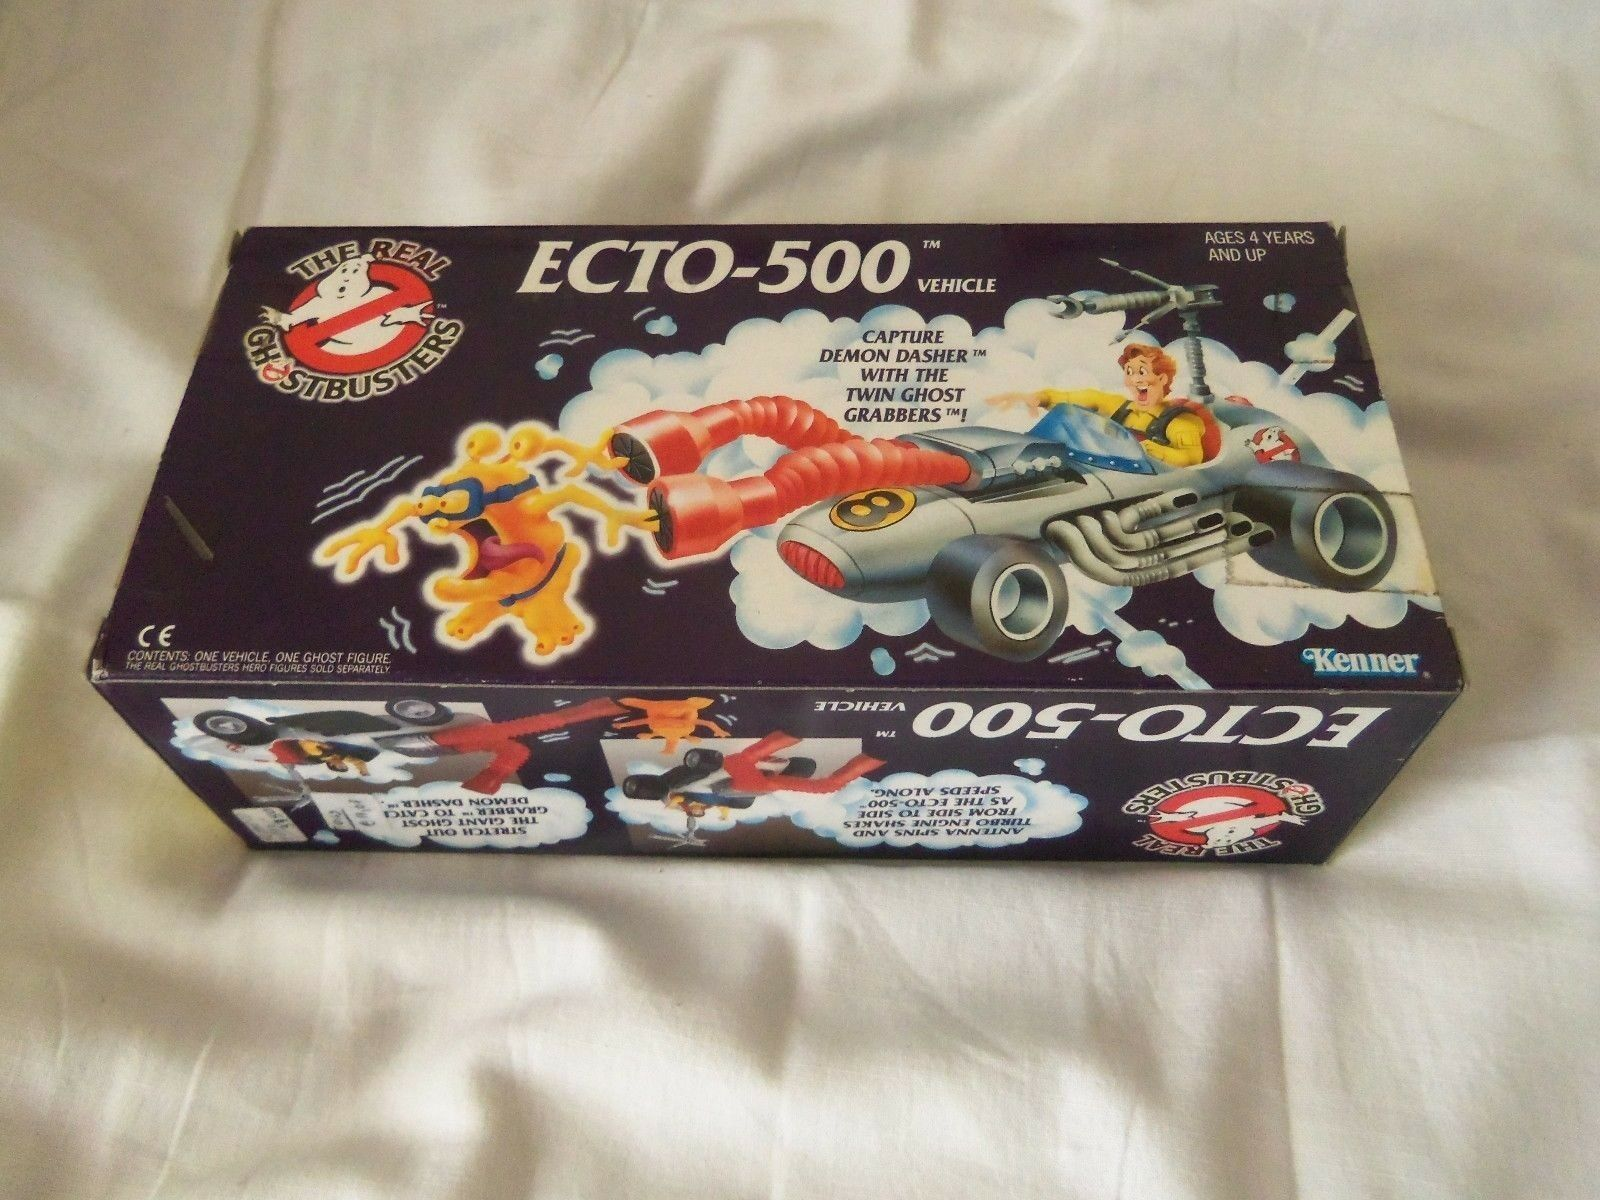 THE REAL GHOSTBUSTERS ECTO-500 VEHICLE VEHICLE VEHICLE DEMON DASHER TWIN GHOST GRABBERS NEW ▲▲▲ f51436